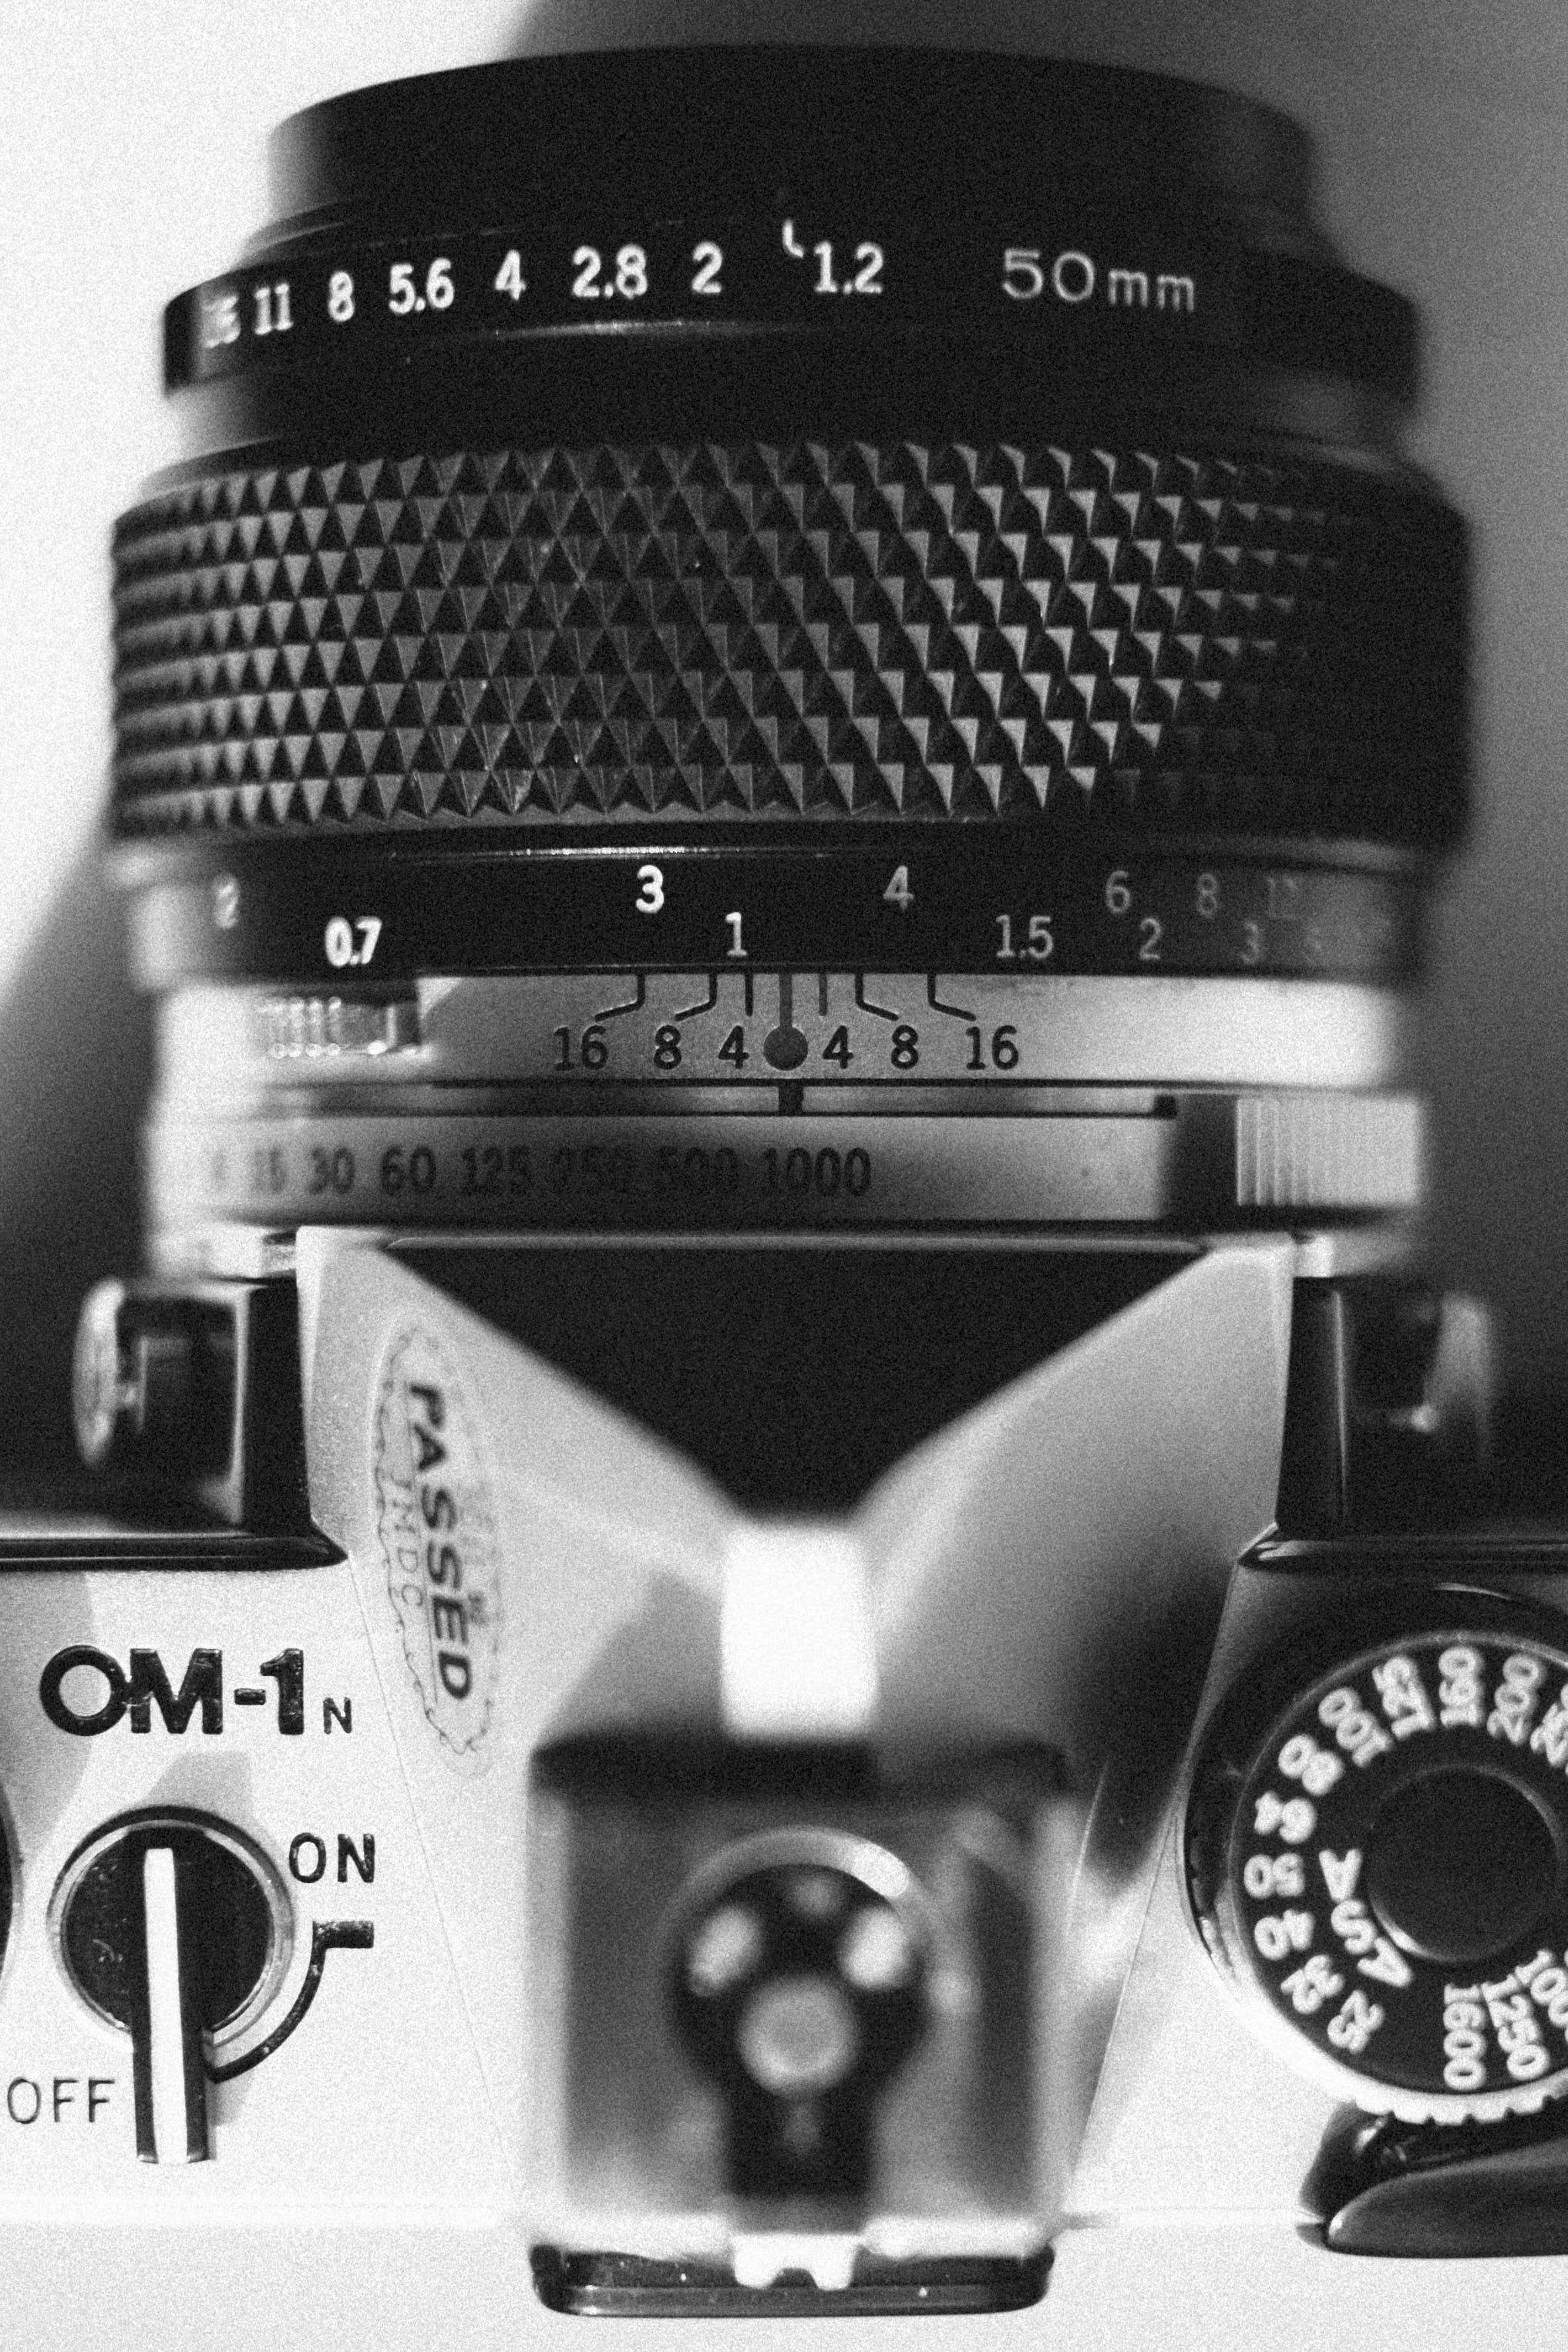 Grayscale Photo of Mirrorless Camera